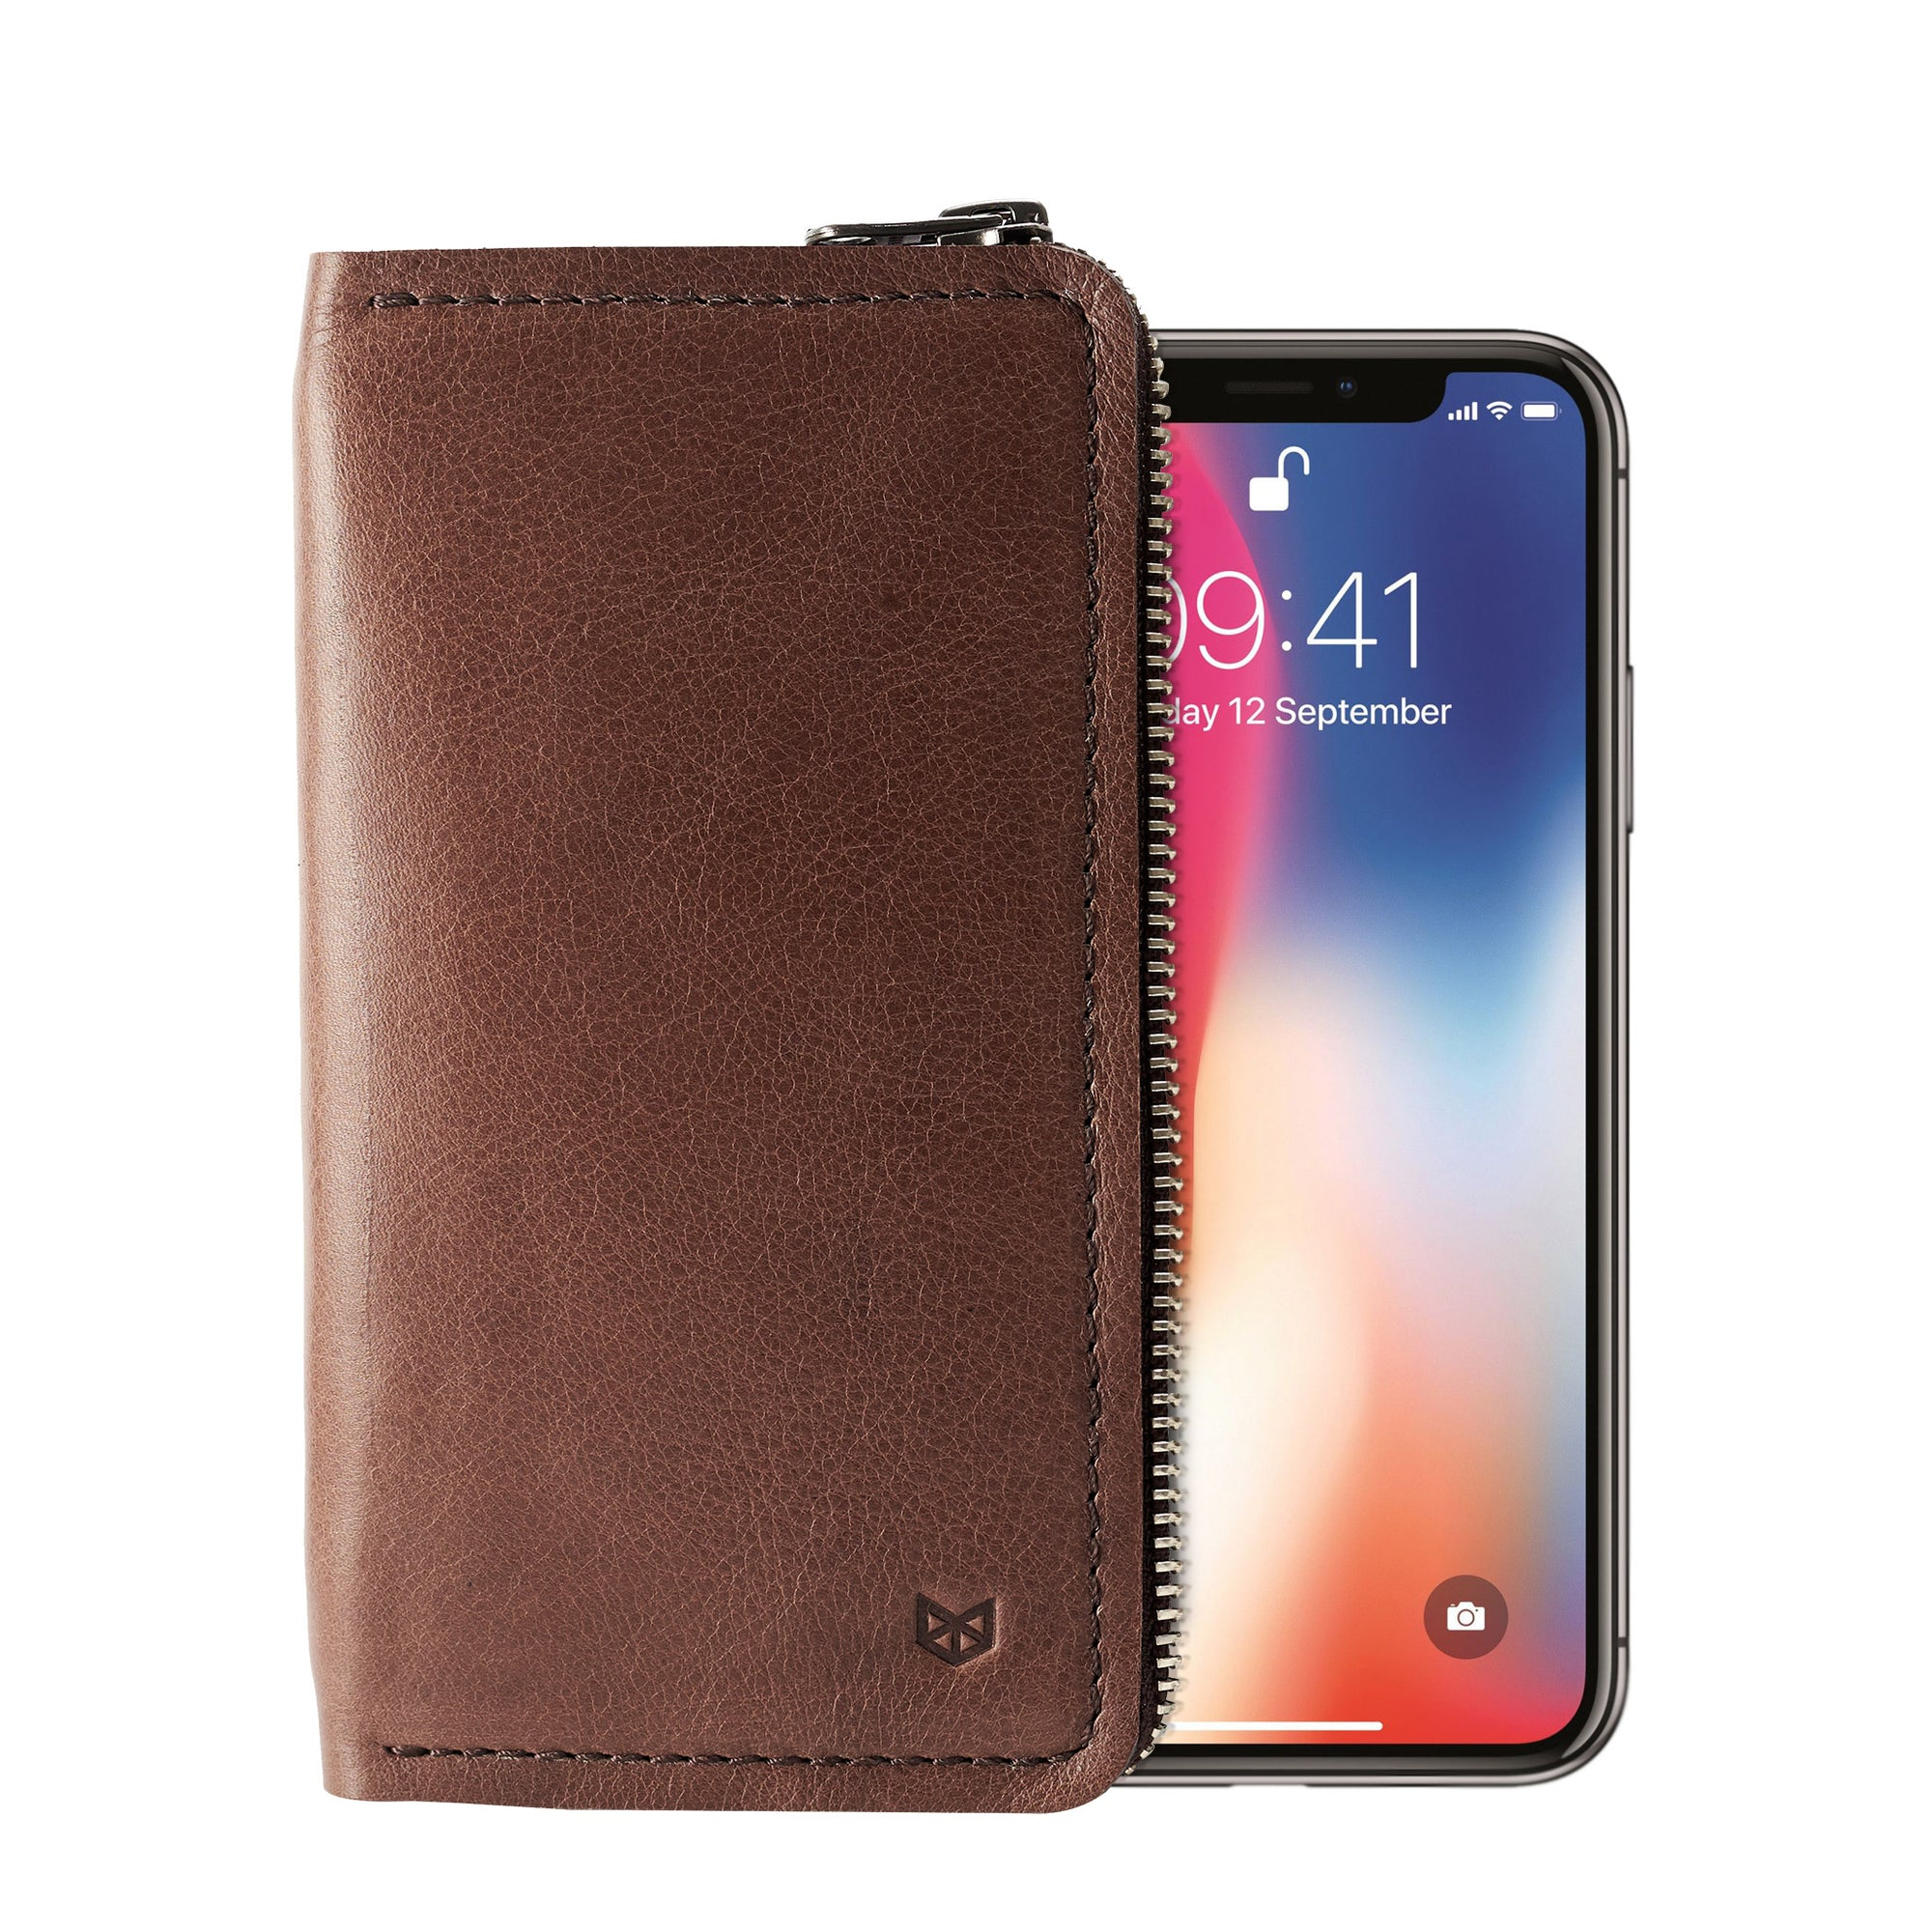 Brown iPhone leather wallet stand case for mens gifts. iPhone x, iPhone 10, iPhone 8 plus leather stand case